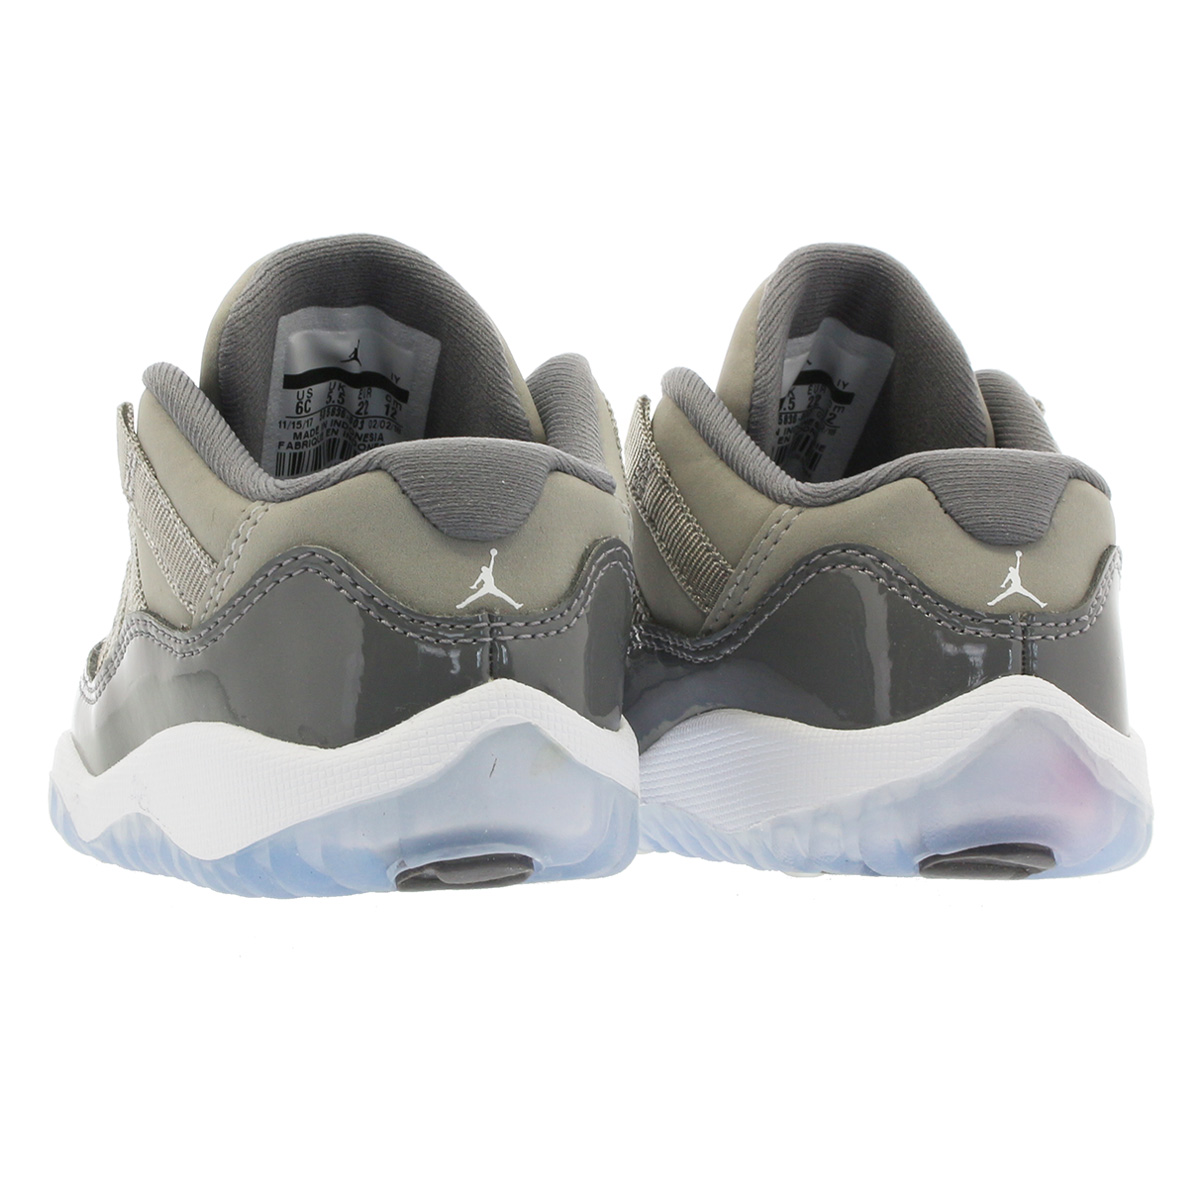 799e883d8c2 ... NIKE AIR JORDAN 11 RETRO LOW BT Nike Air Jordan 11 nostalgic low BT  MEDIUM GREY ...